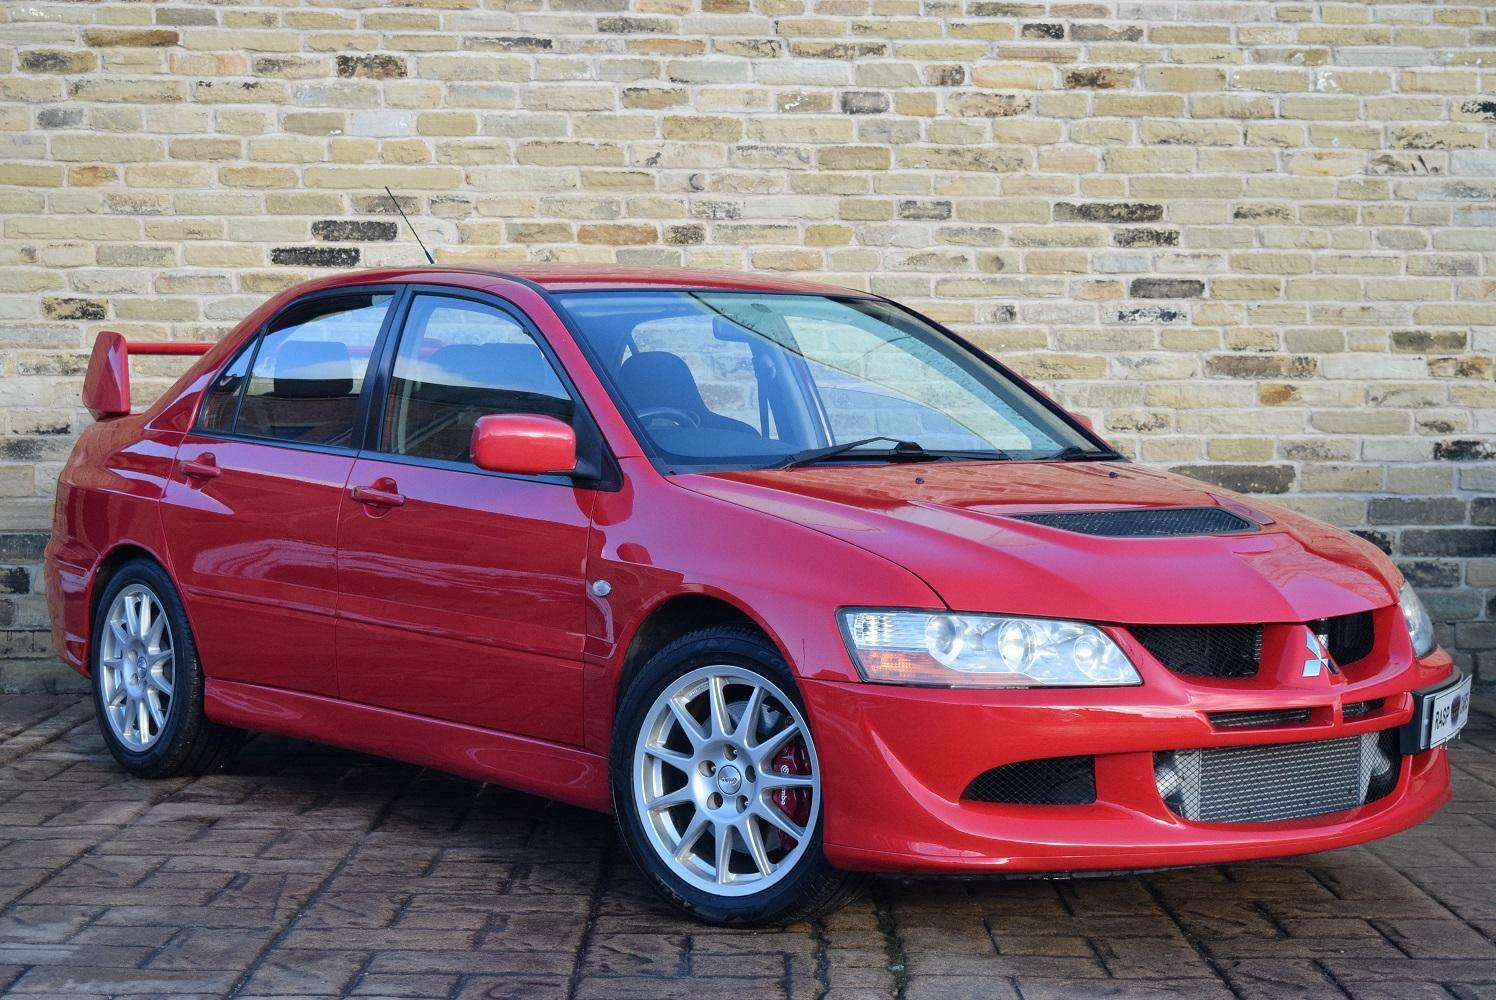 2004 Mitsubishi Lancer Evolution 8 2 Owners + F/S/H For Sale (picture 1 of 6)